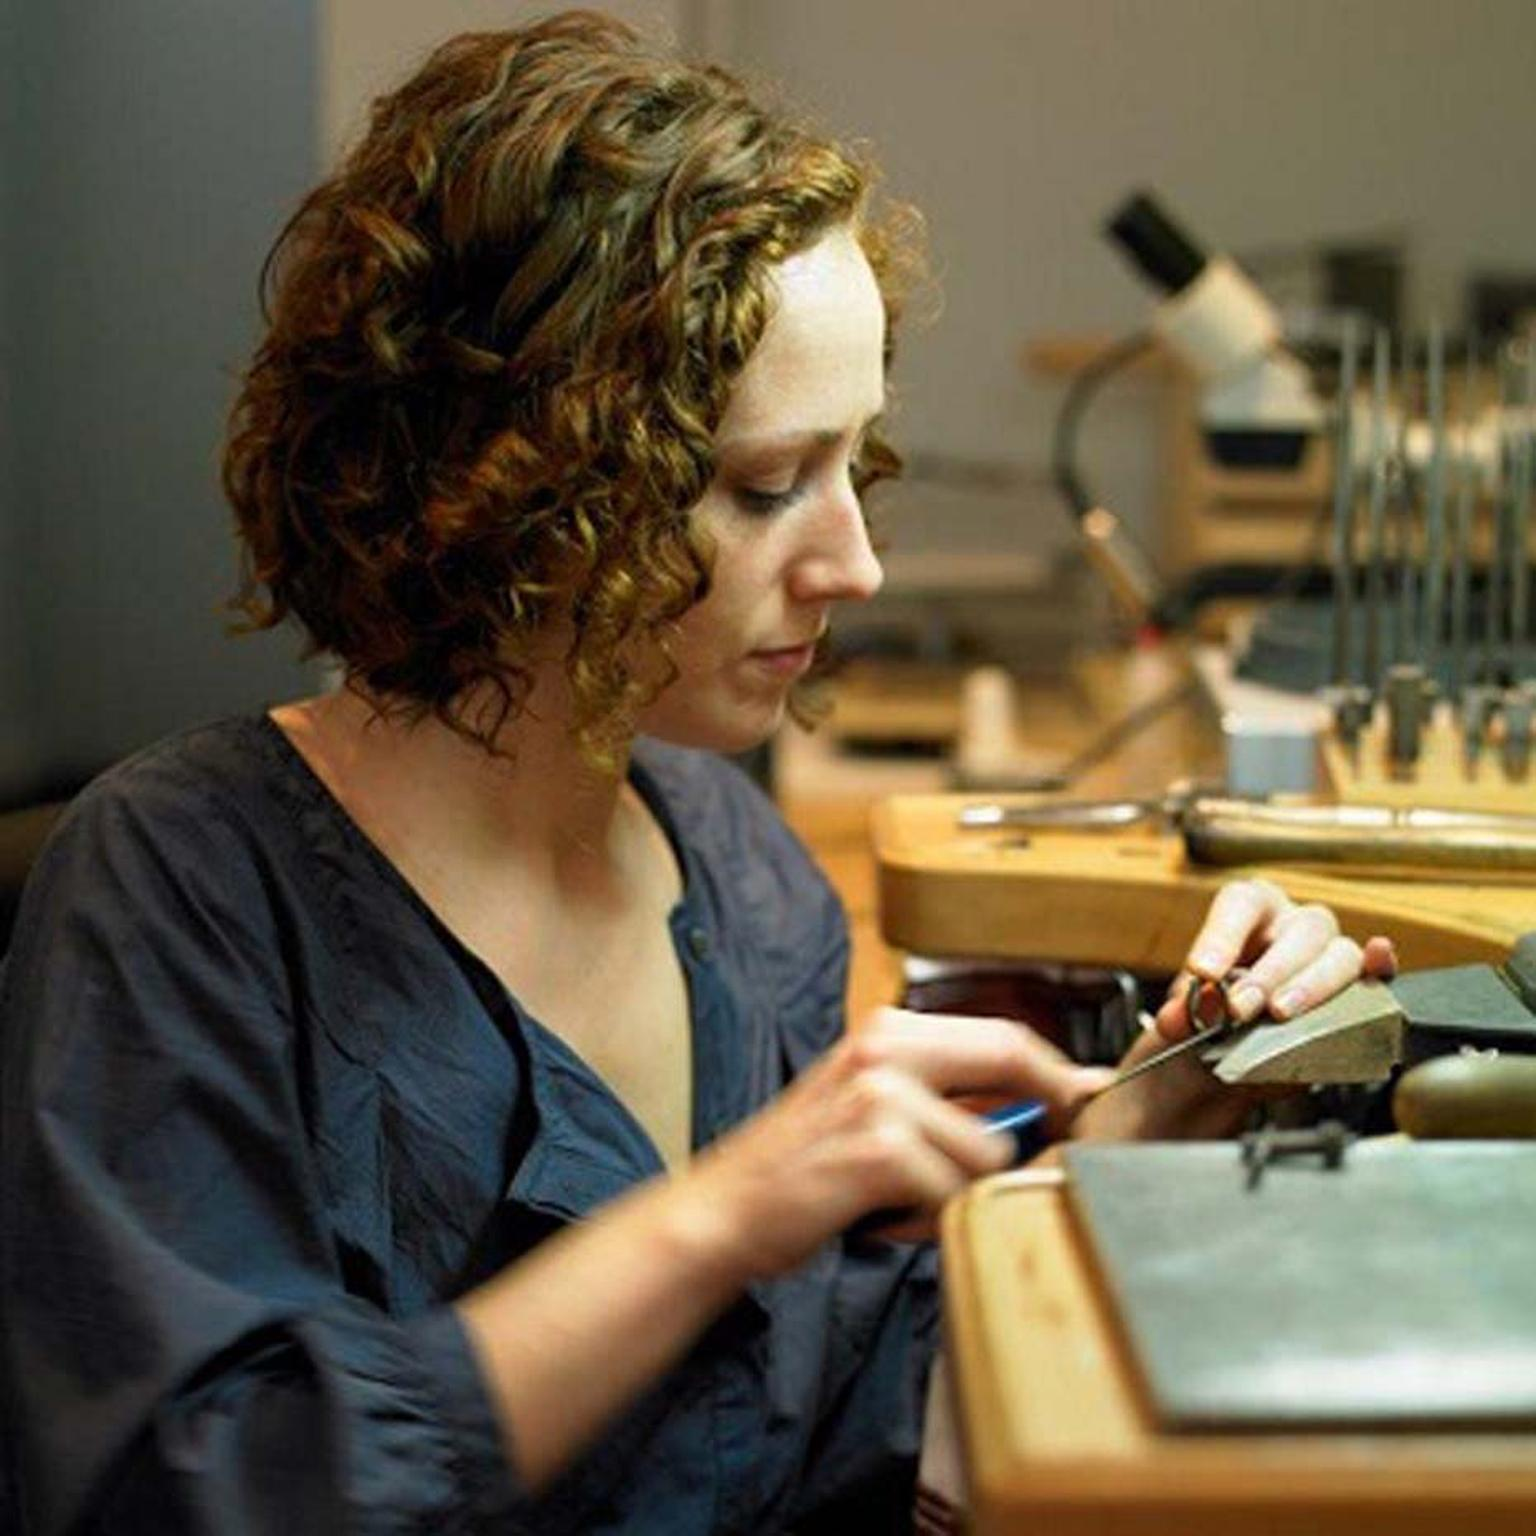 Irish goldsmit Jessica Poole lives and works in Central London workshop where commitment to quality and craft is the very essence of her work.